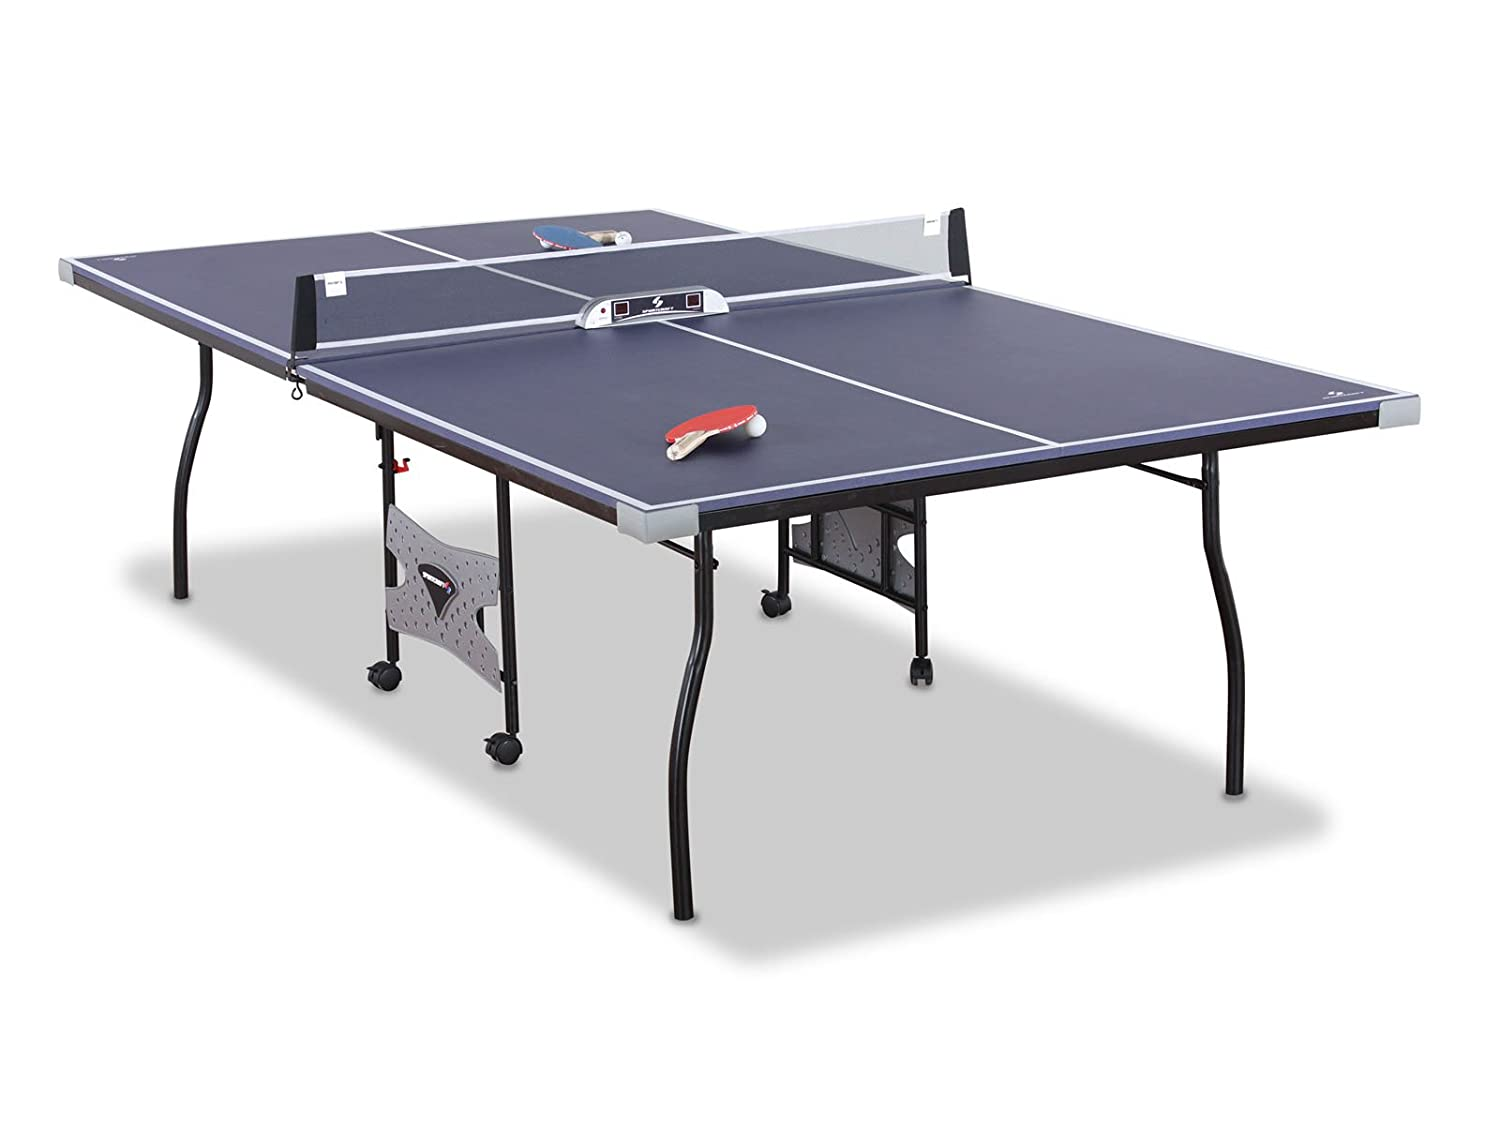 Amazoncom Sportcraft Piece Table Tennis Table Table Tennis - Free ping pong table craigslist